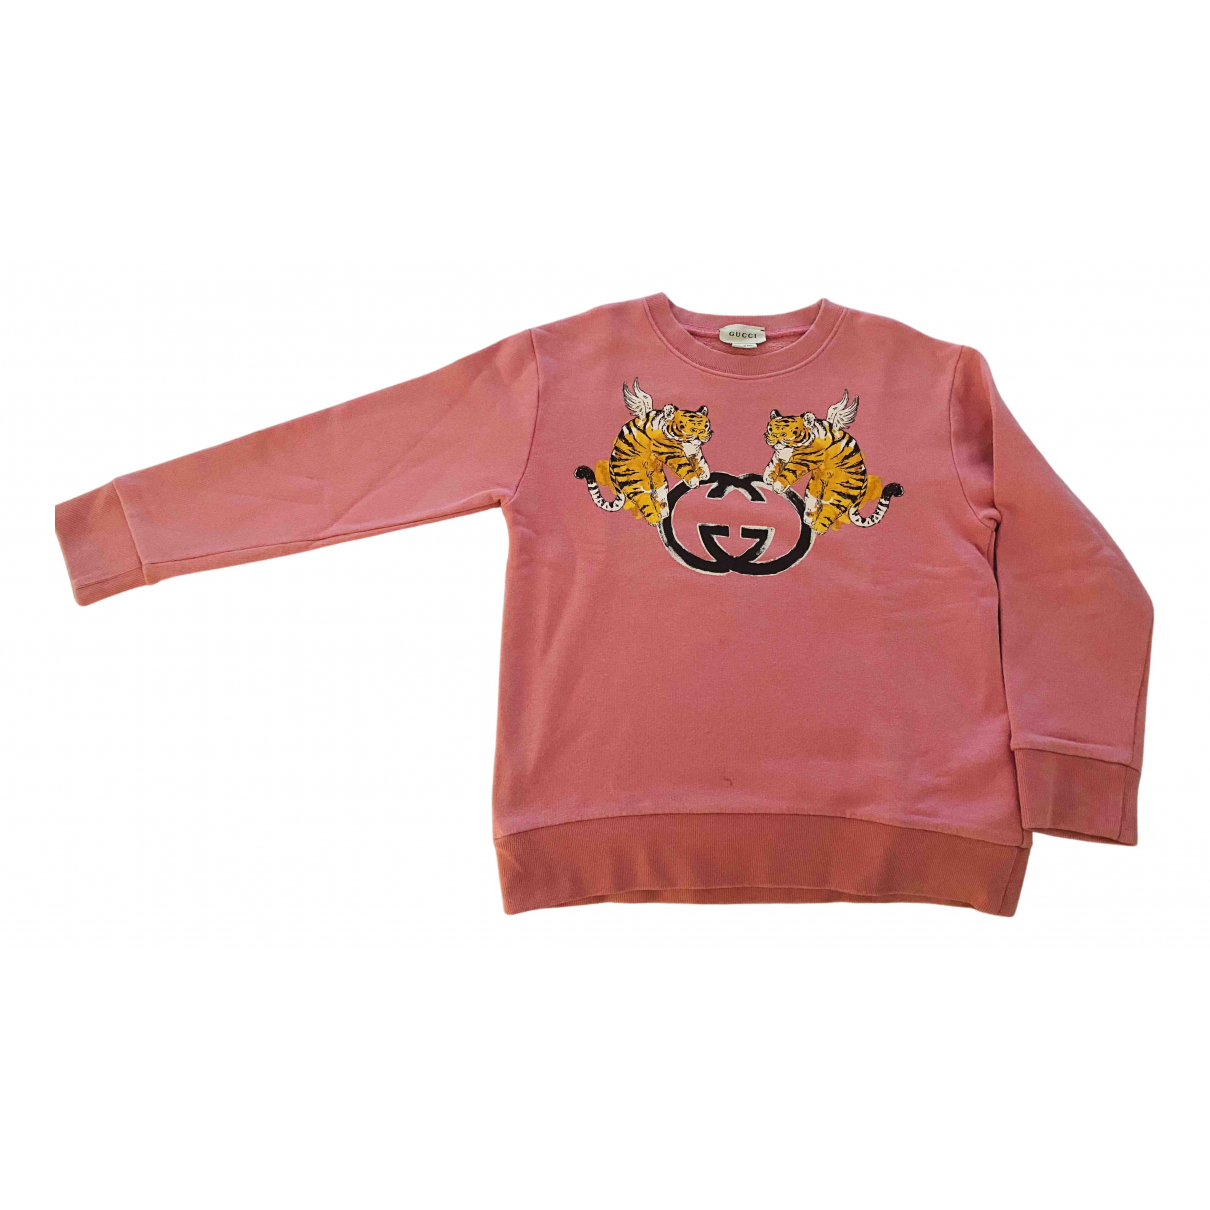 Gucci N Pink Cotton Knitwear for Kids 8 years - up to 128cm FR